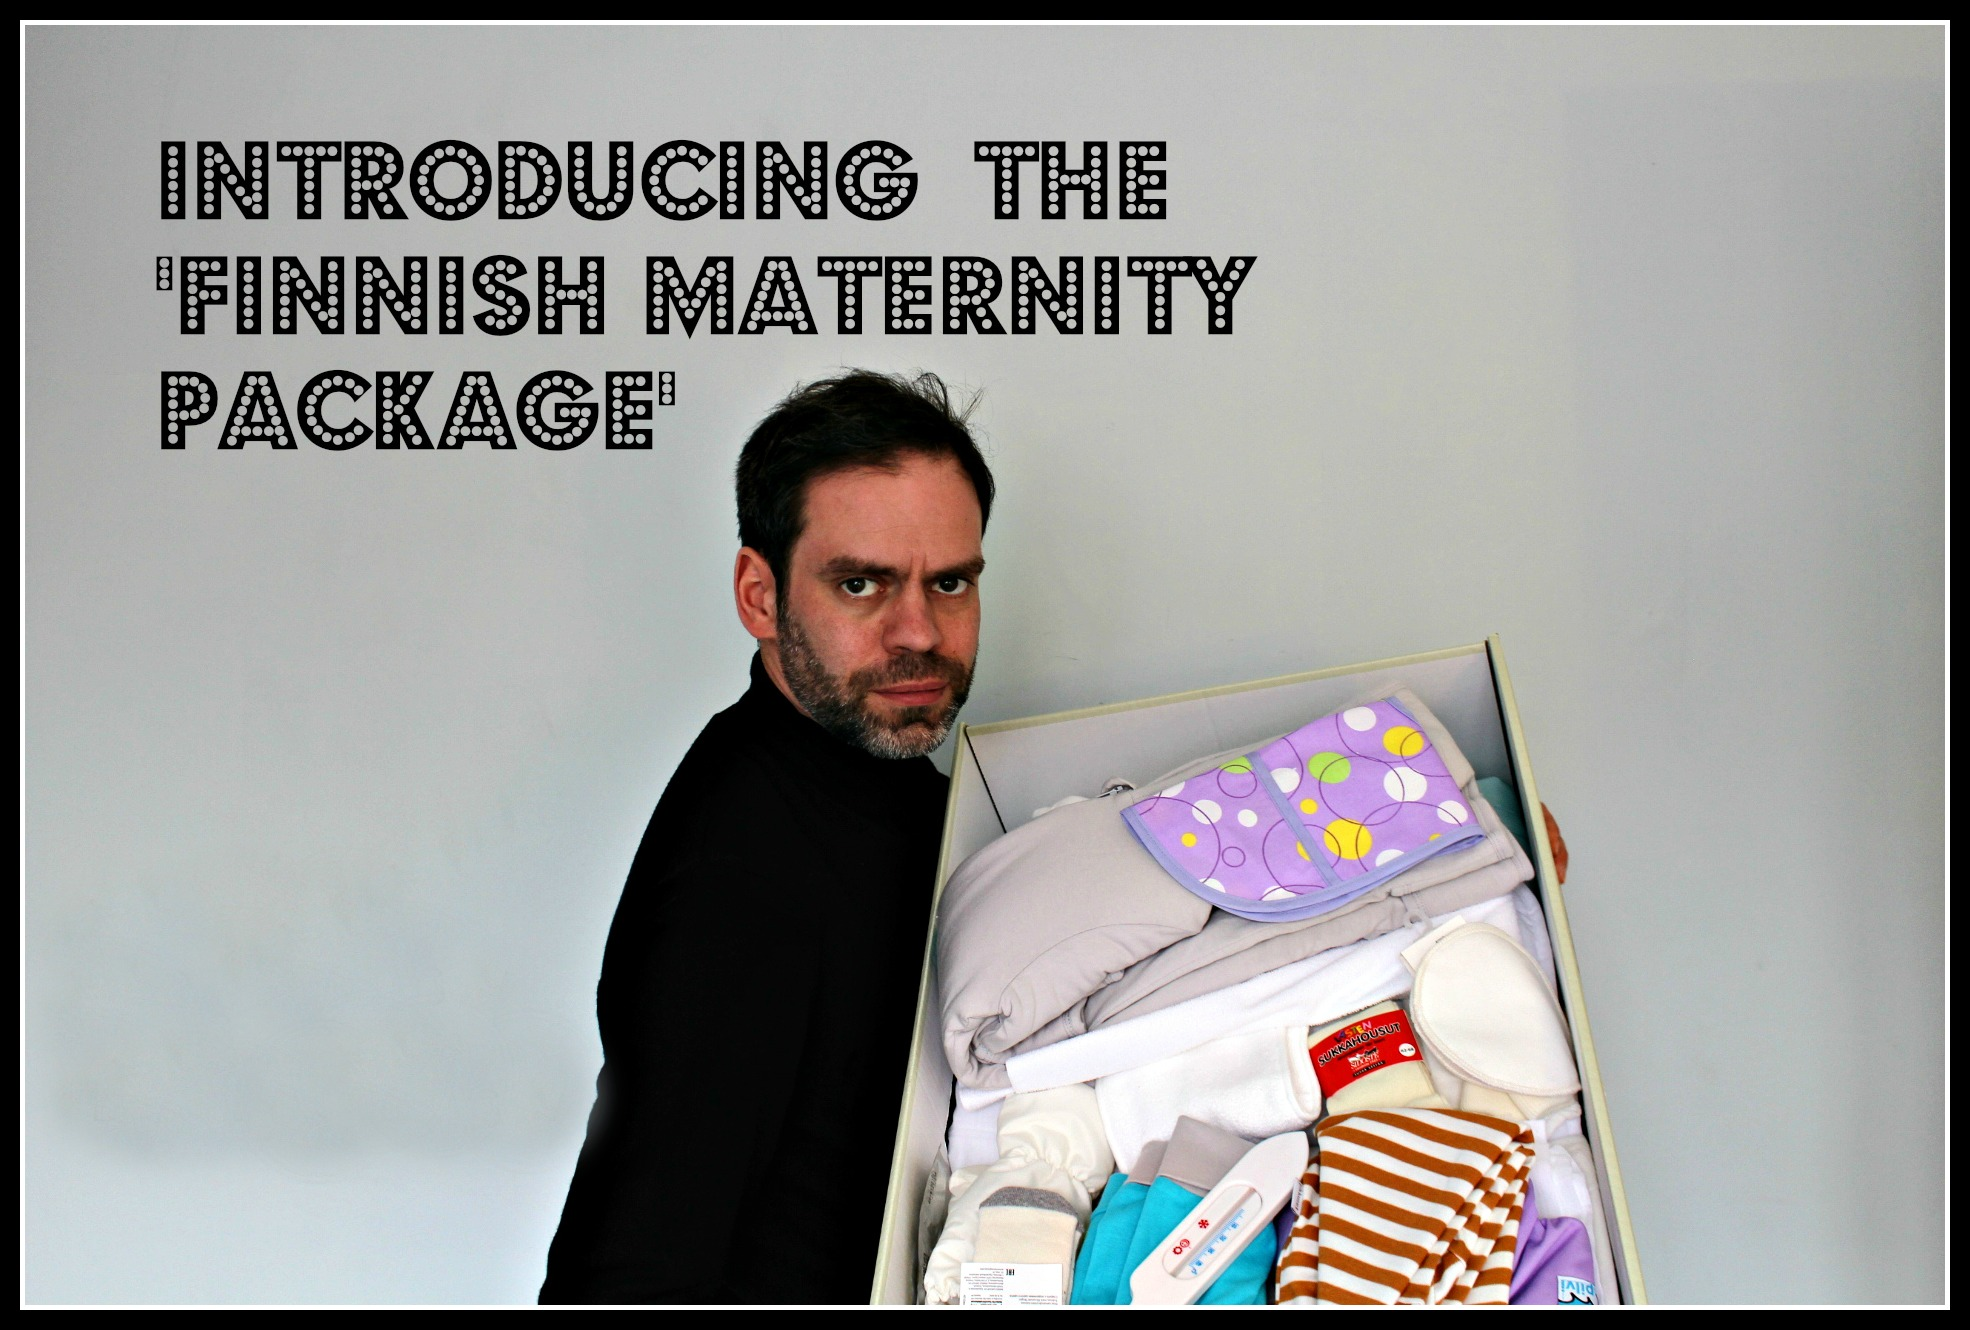 Introducing the Finnish maternity package.